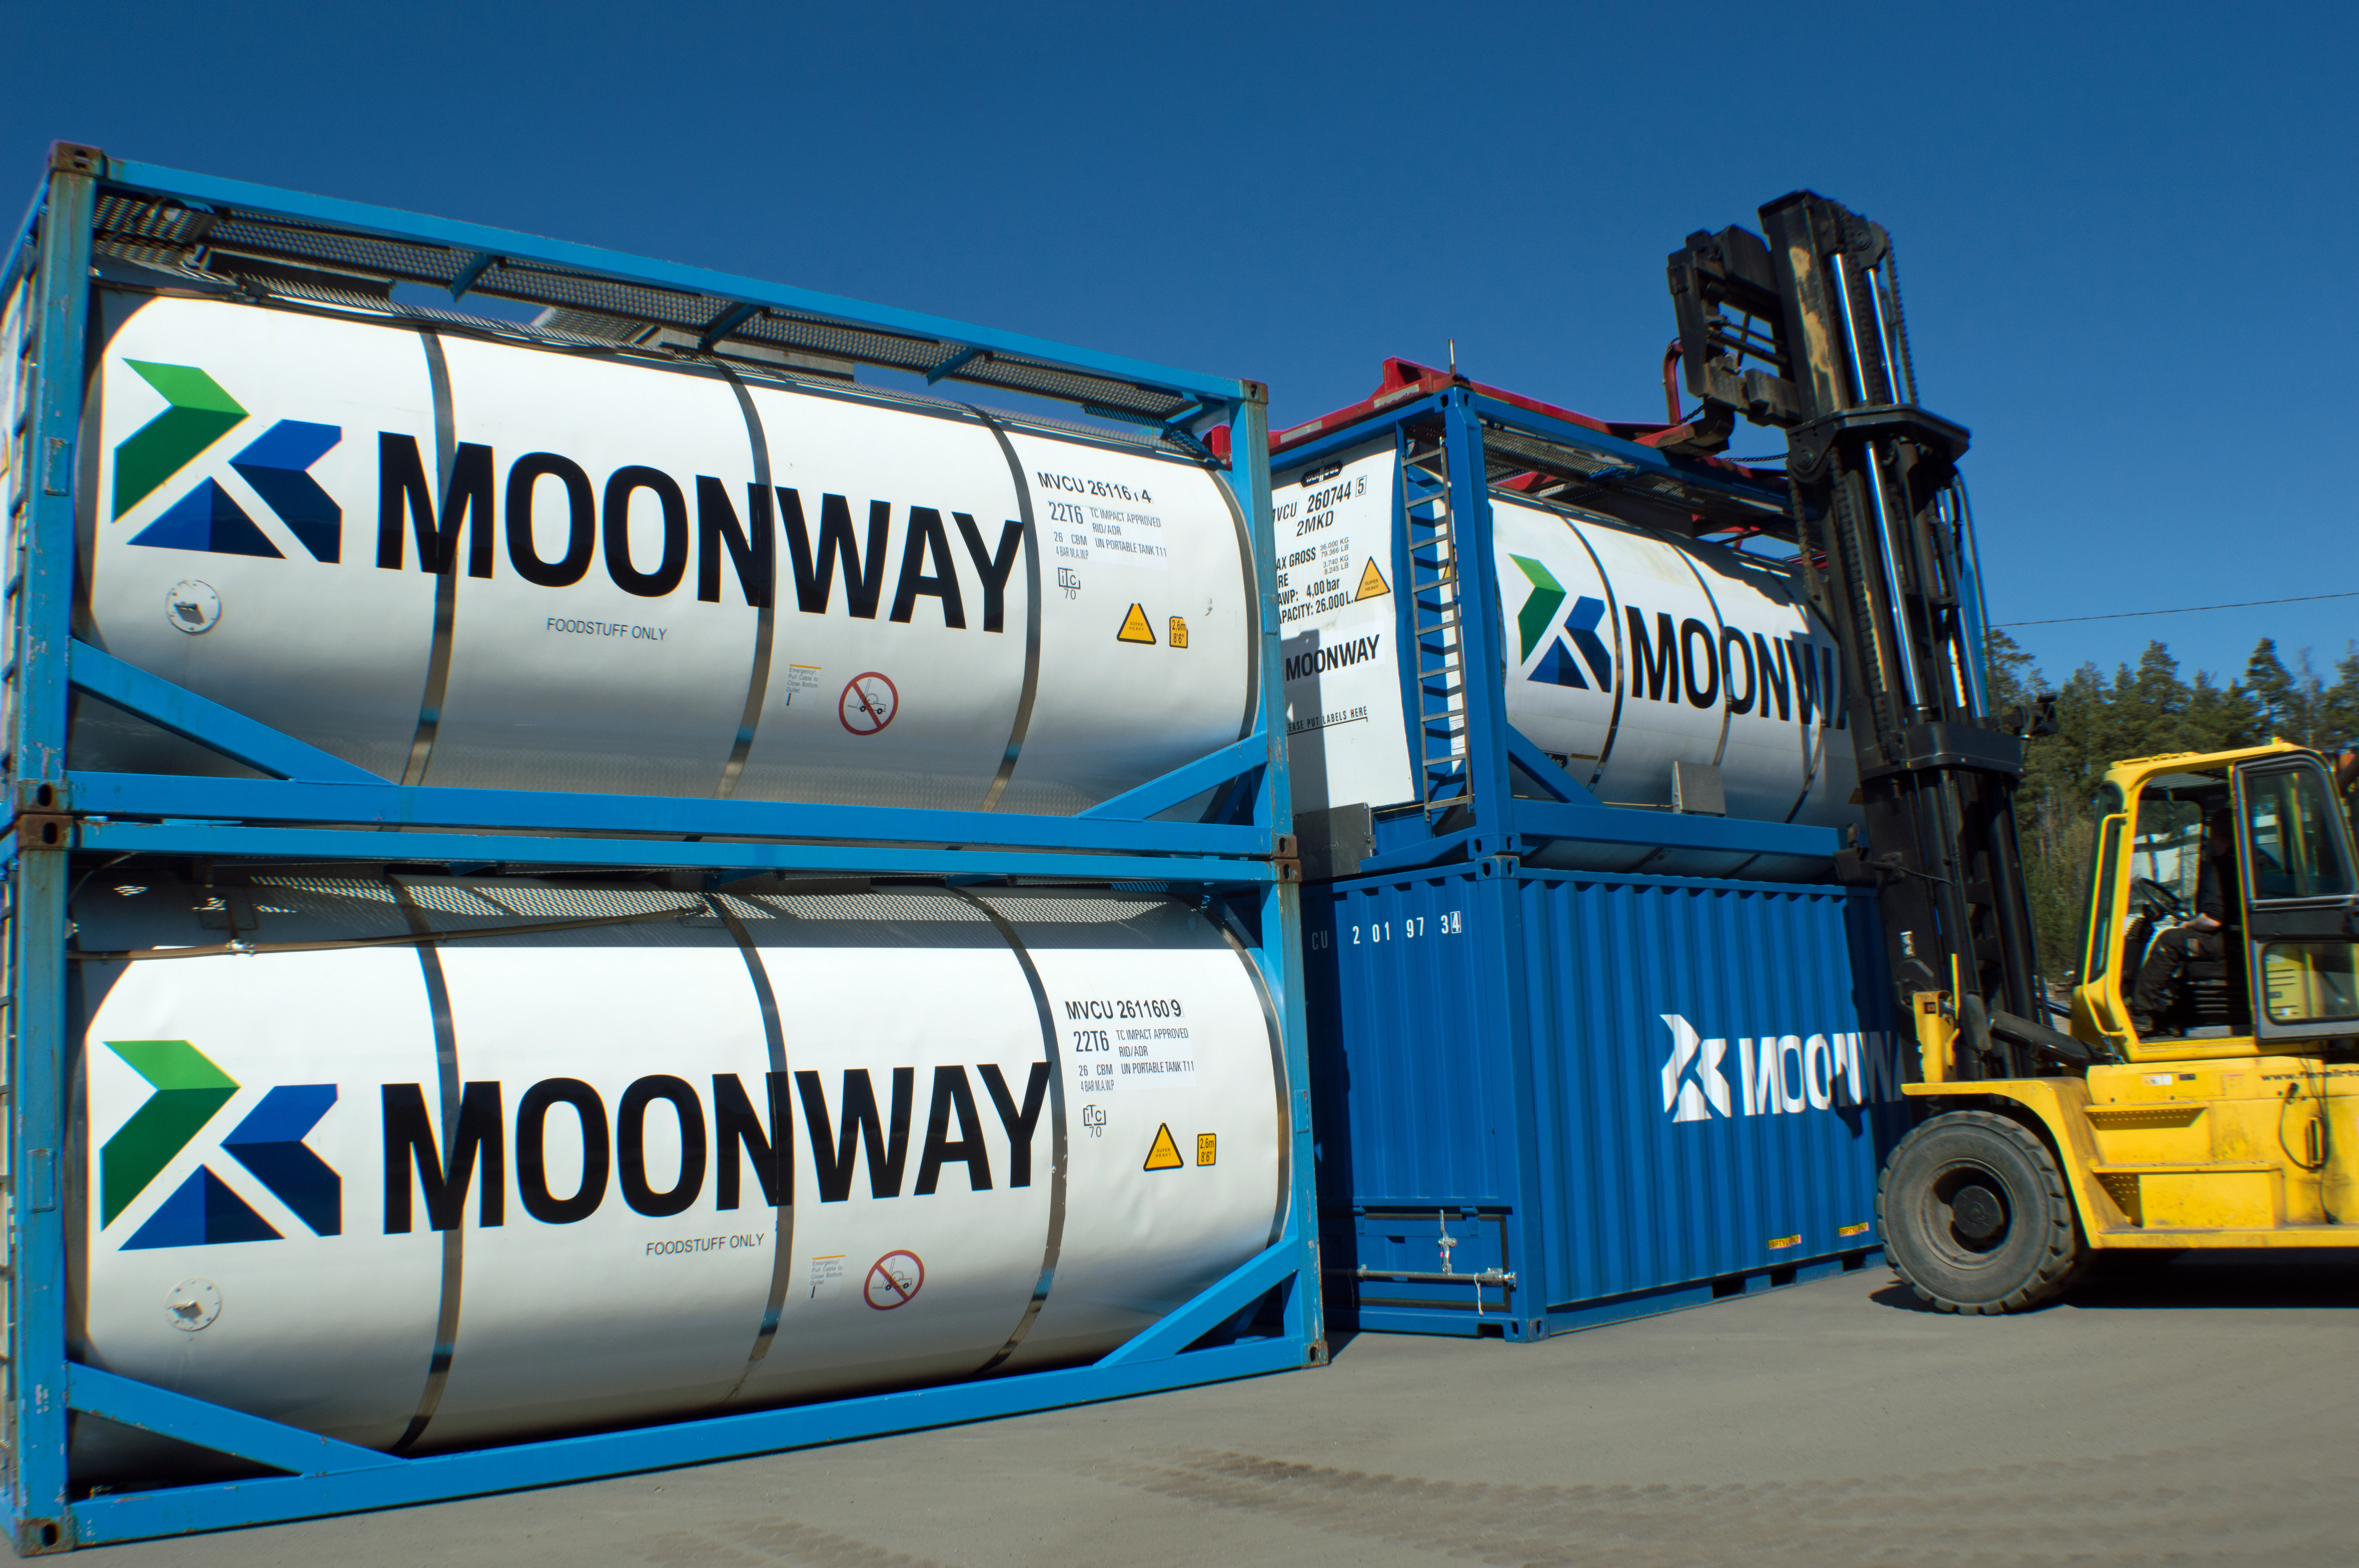 Moonway_containers_edit